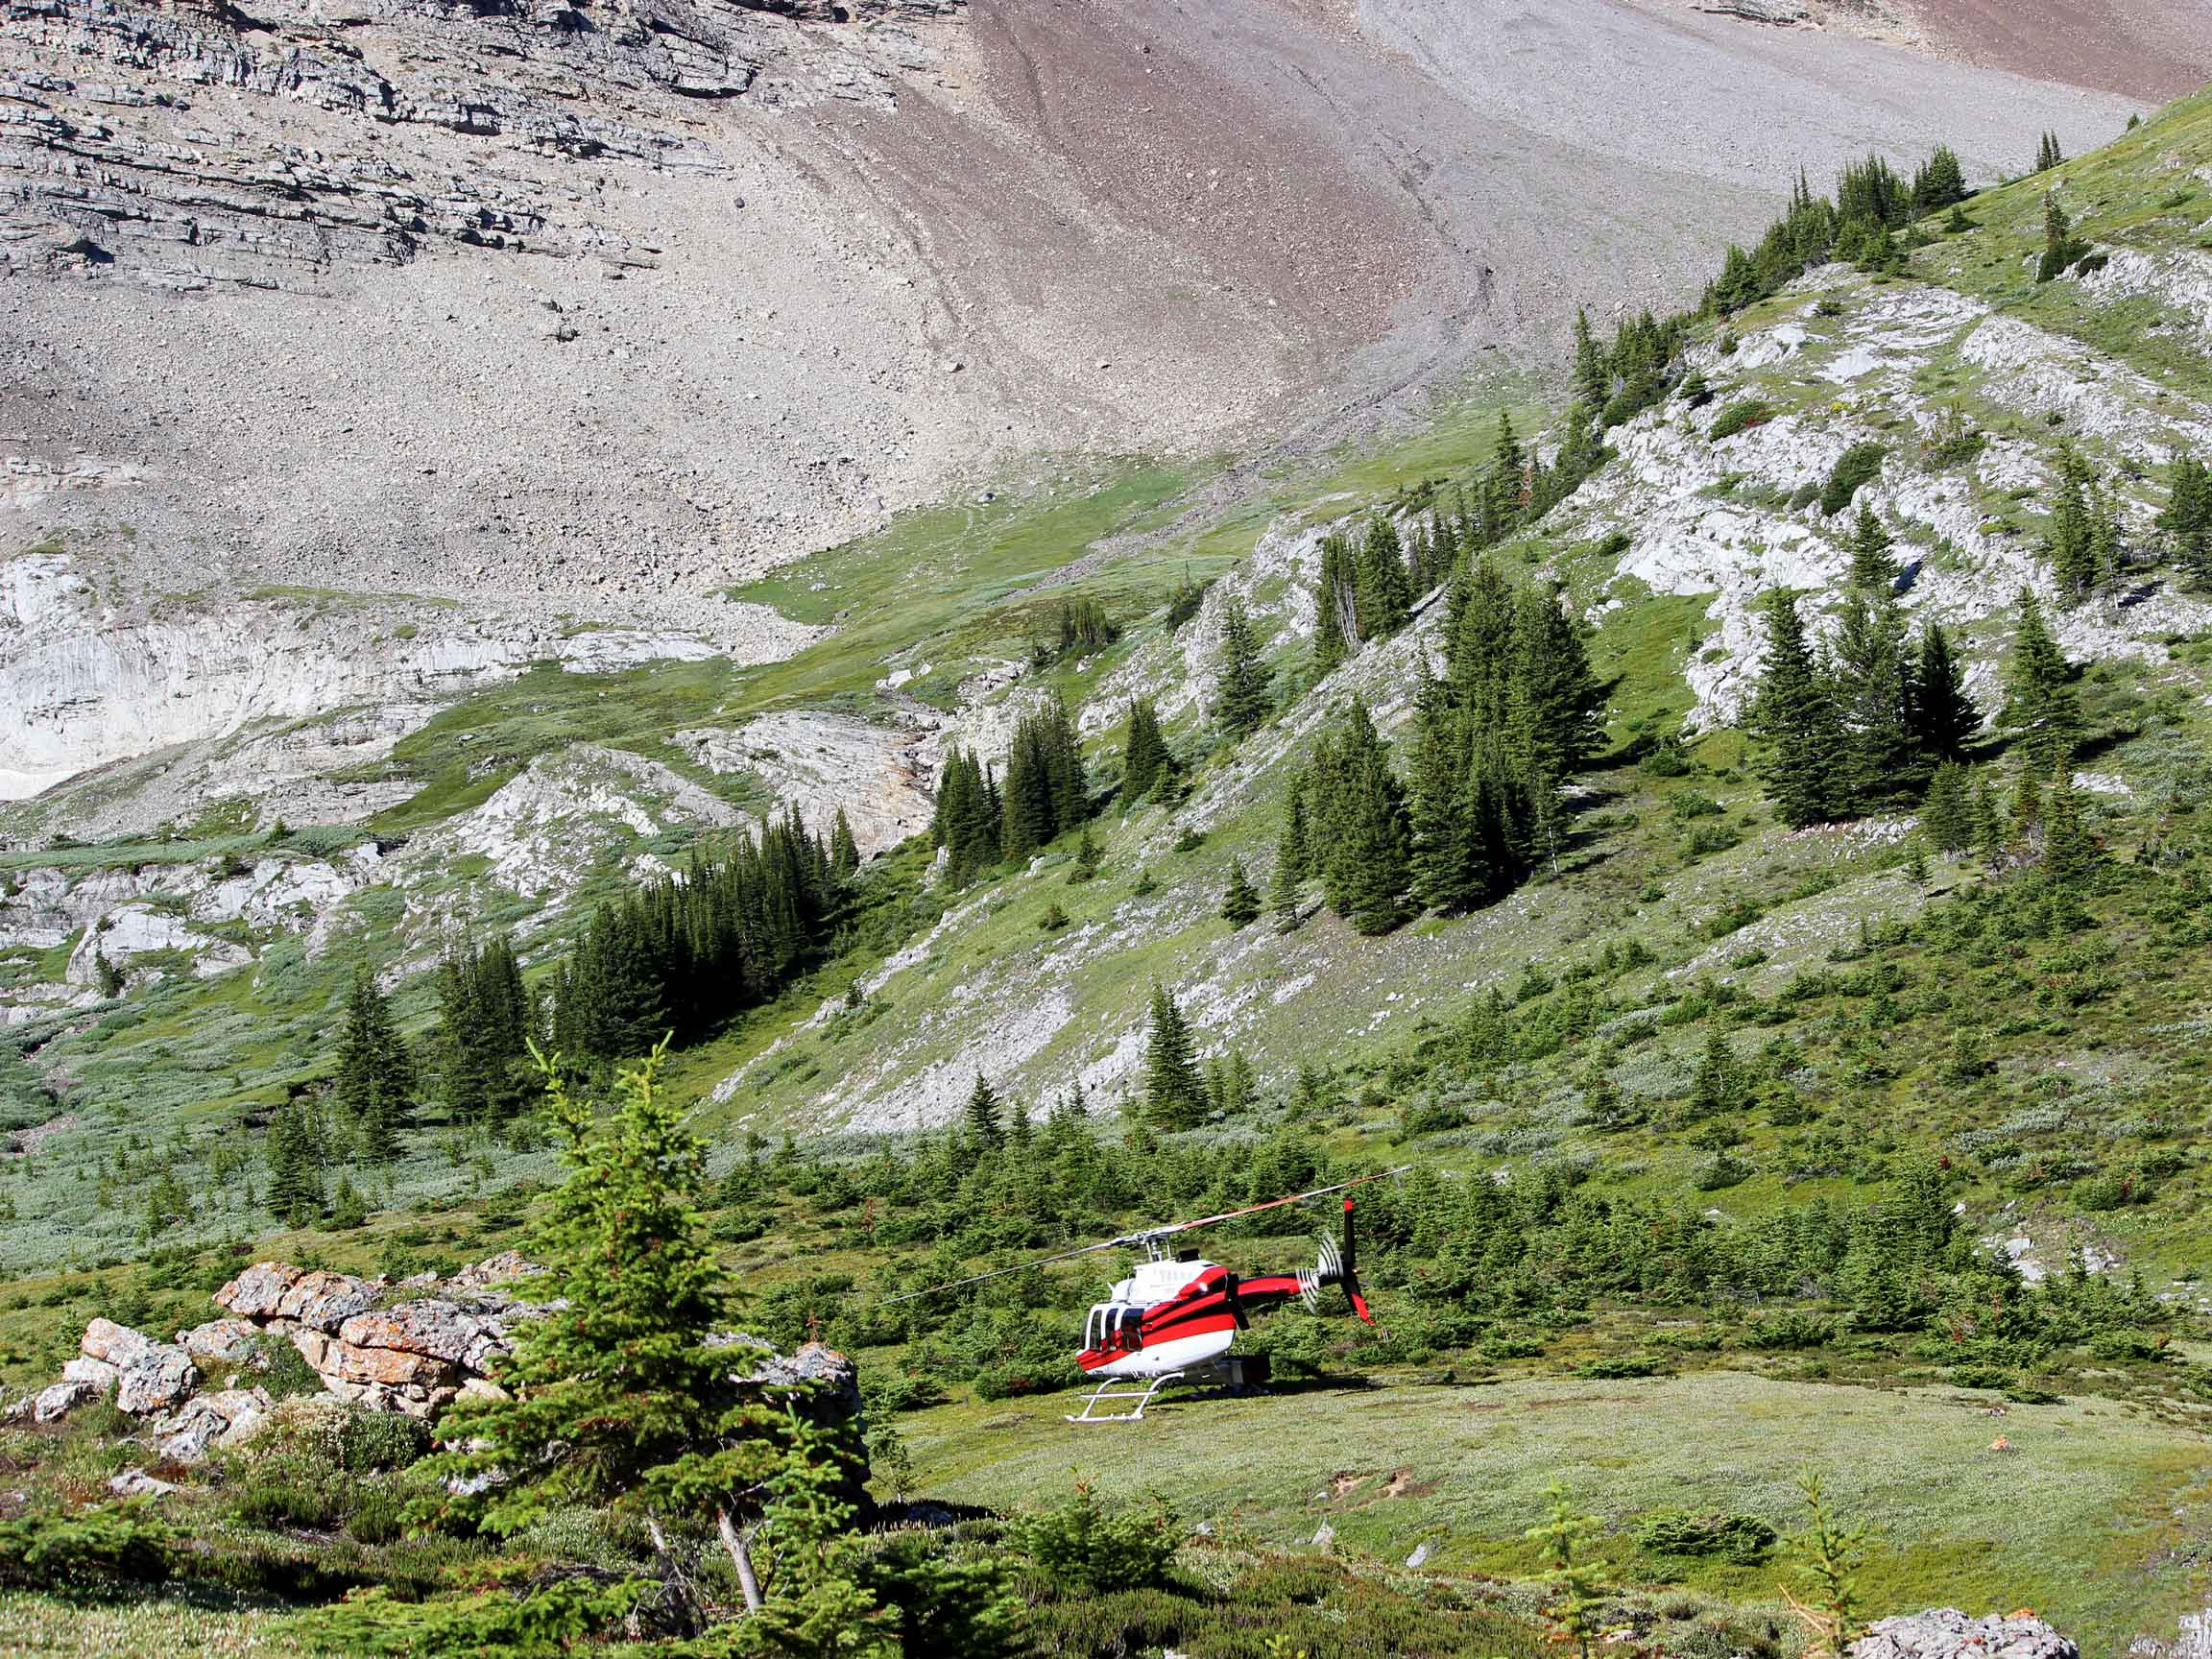 White Mountain Adventures Alpine Helicopters backcountry drop off